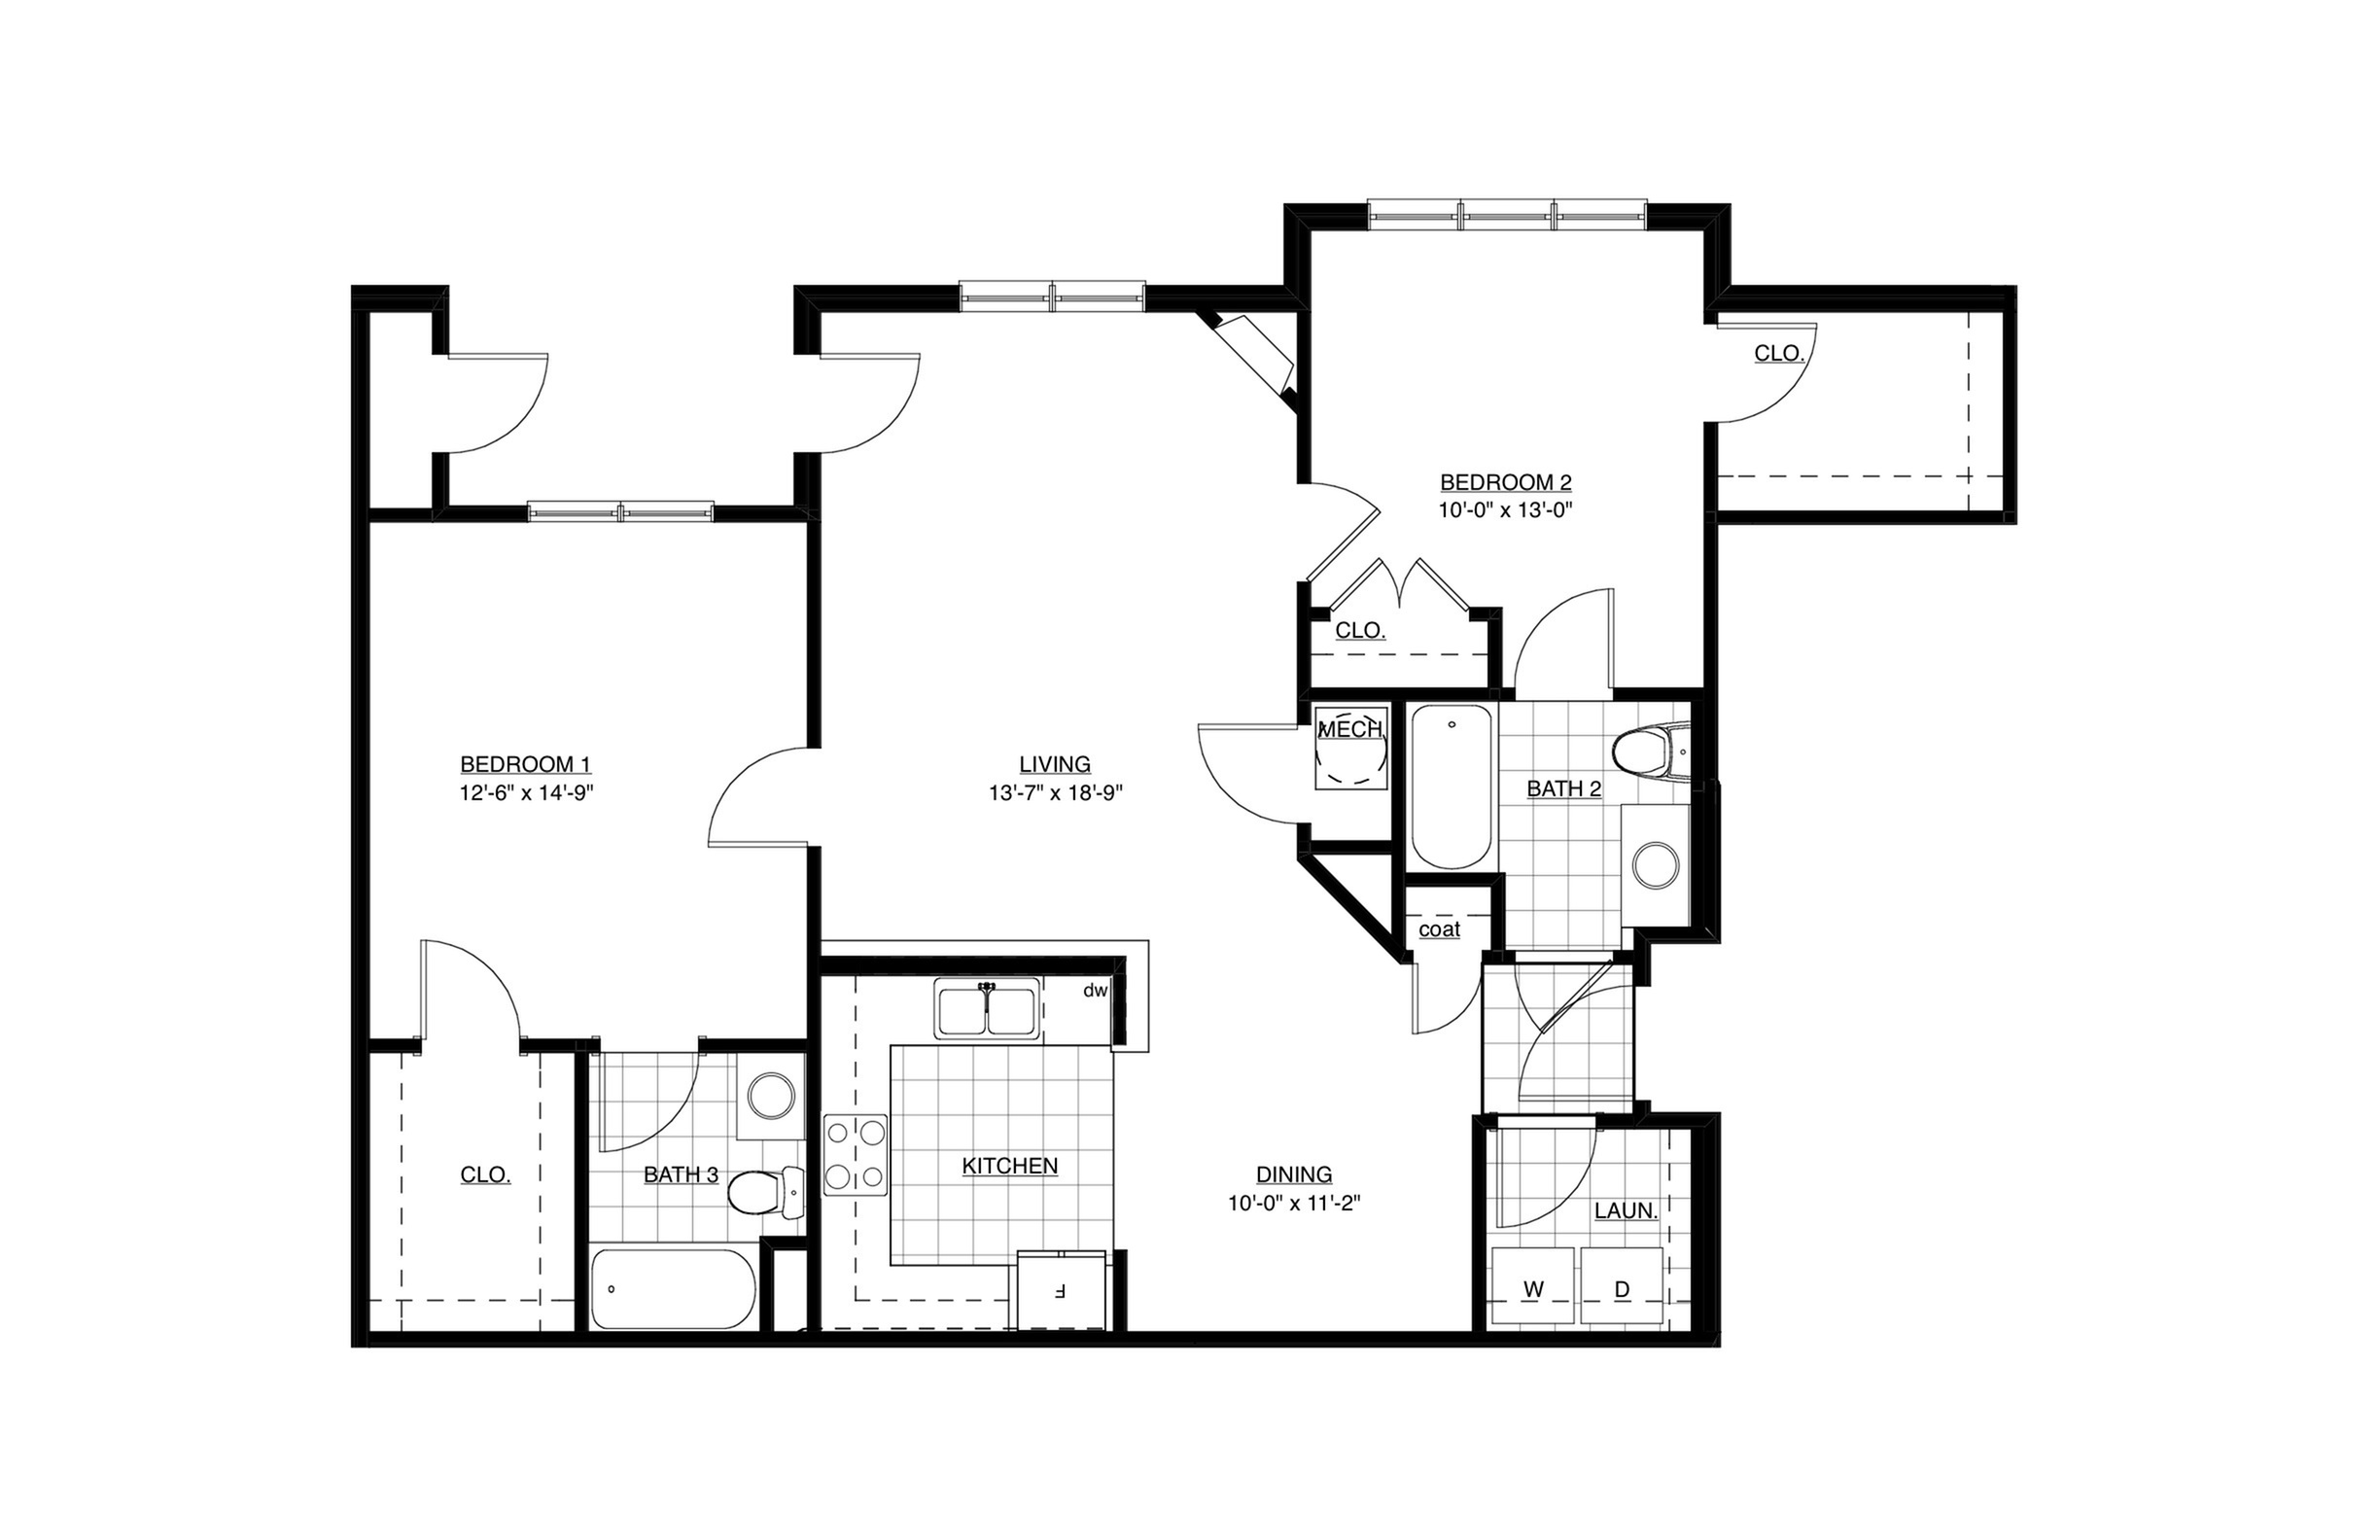 Southern Red Floor Plan Image